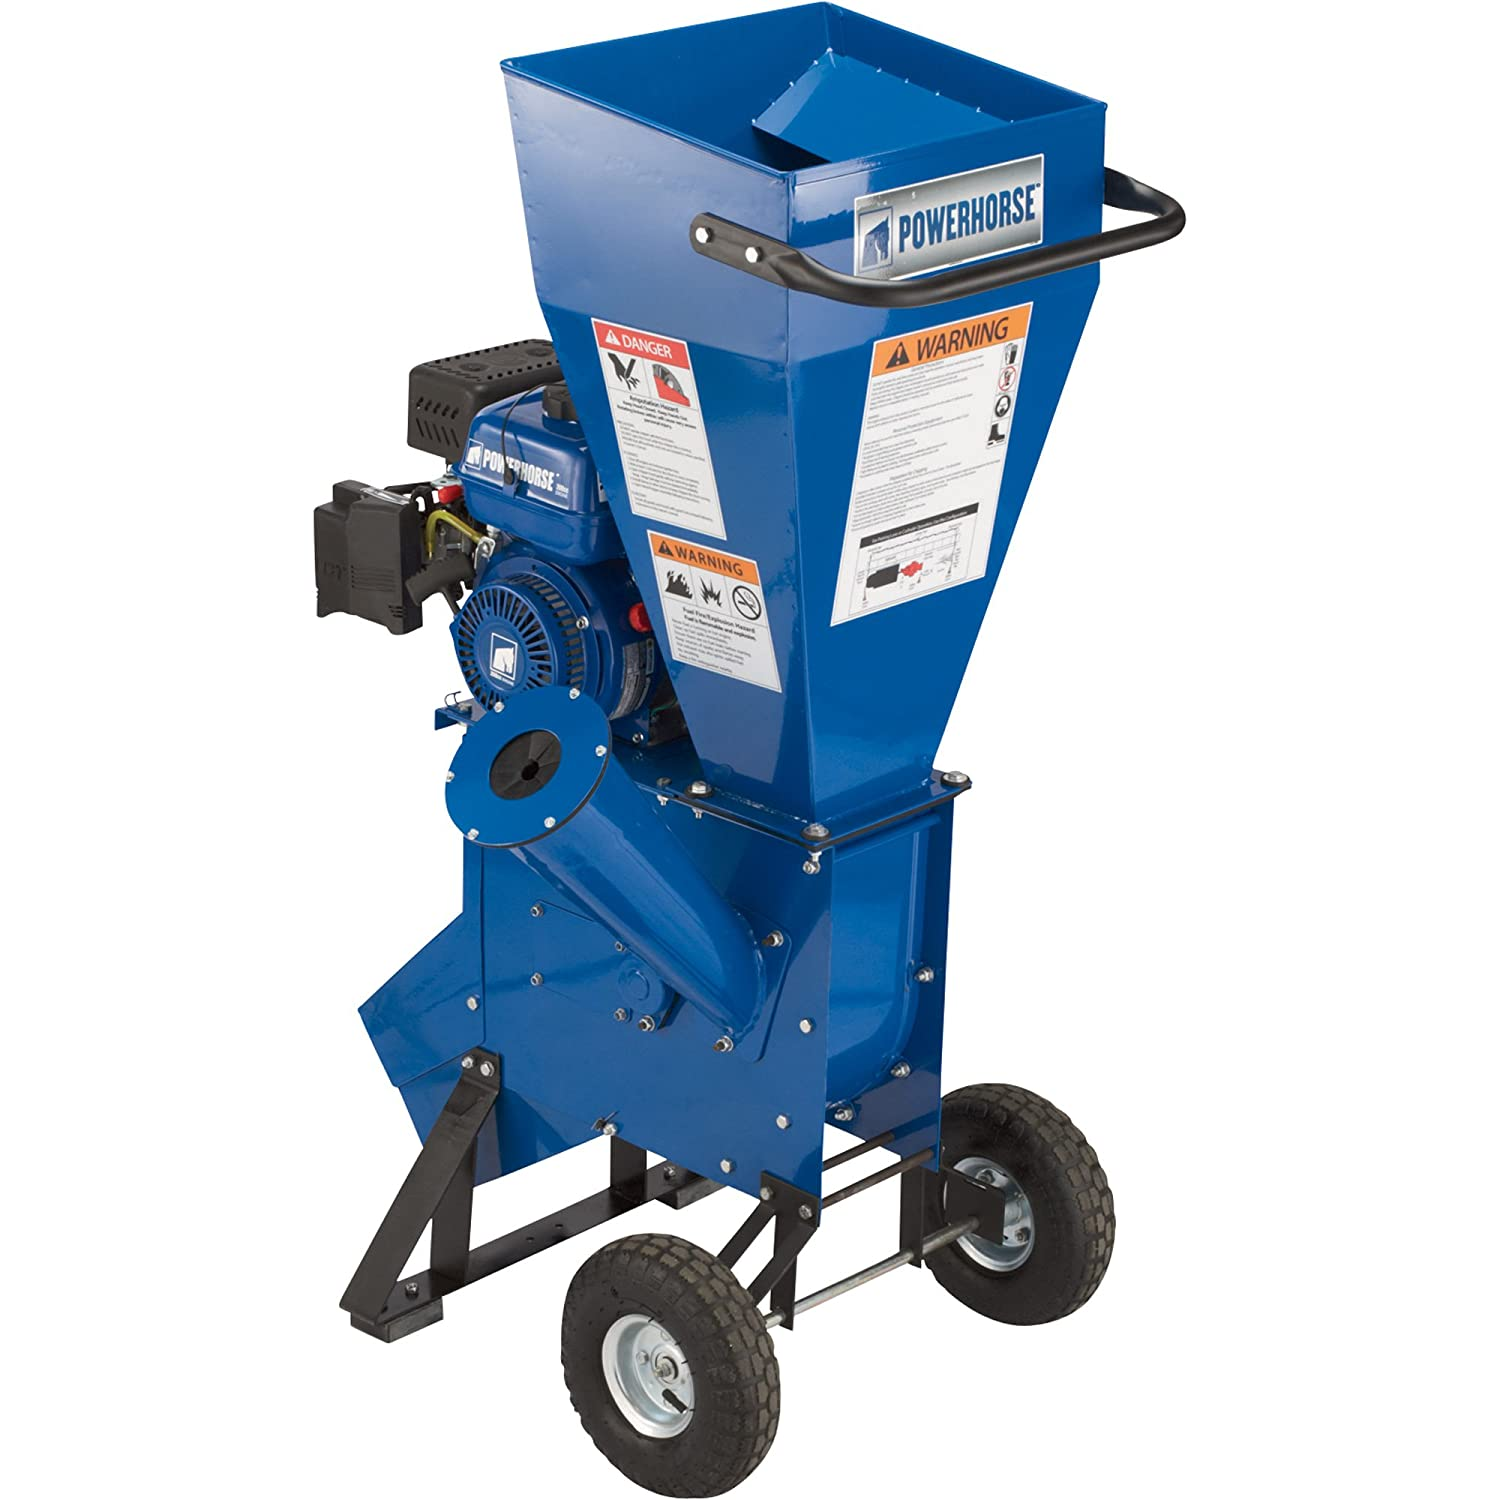 Powerhorse Chipper Shredder 208cc Ohv Engine Wiring Diagram 3in Capacity Lawn And Garden Chippers Outdoor